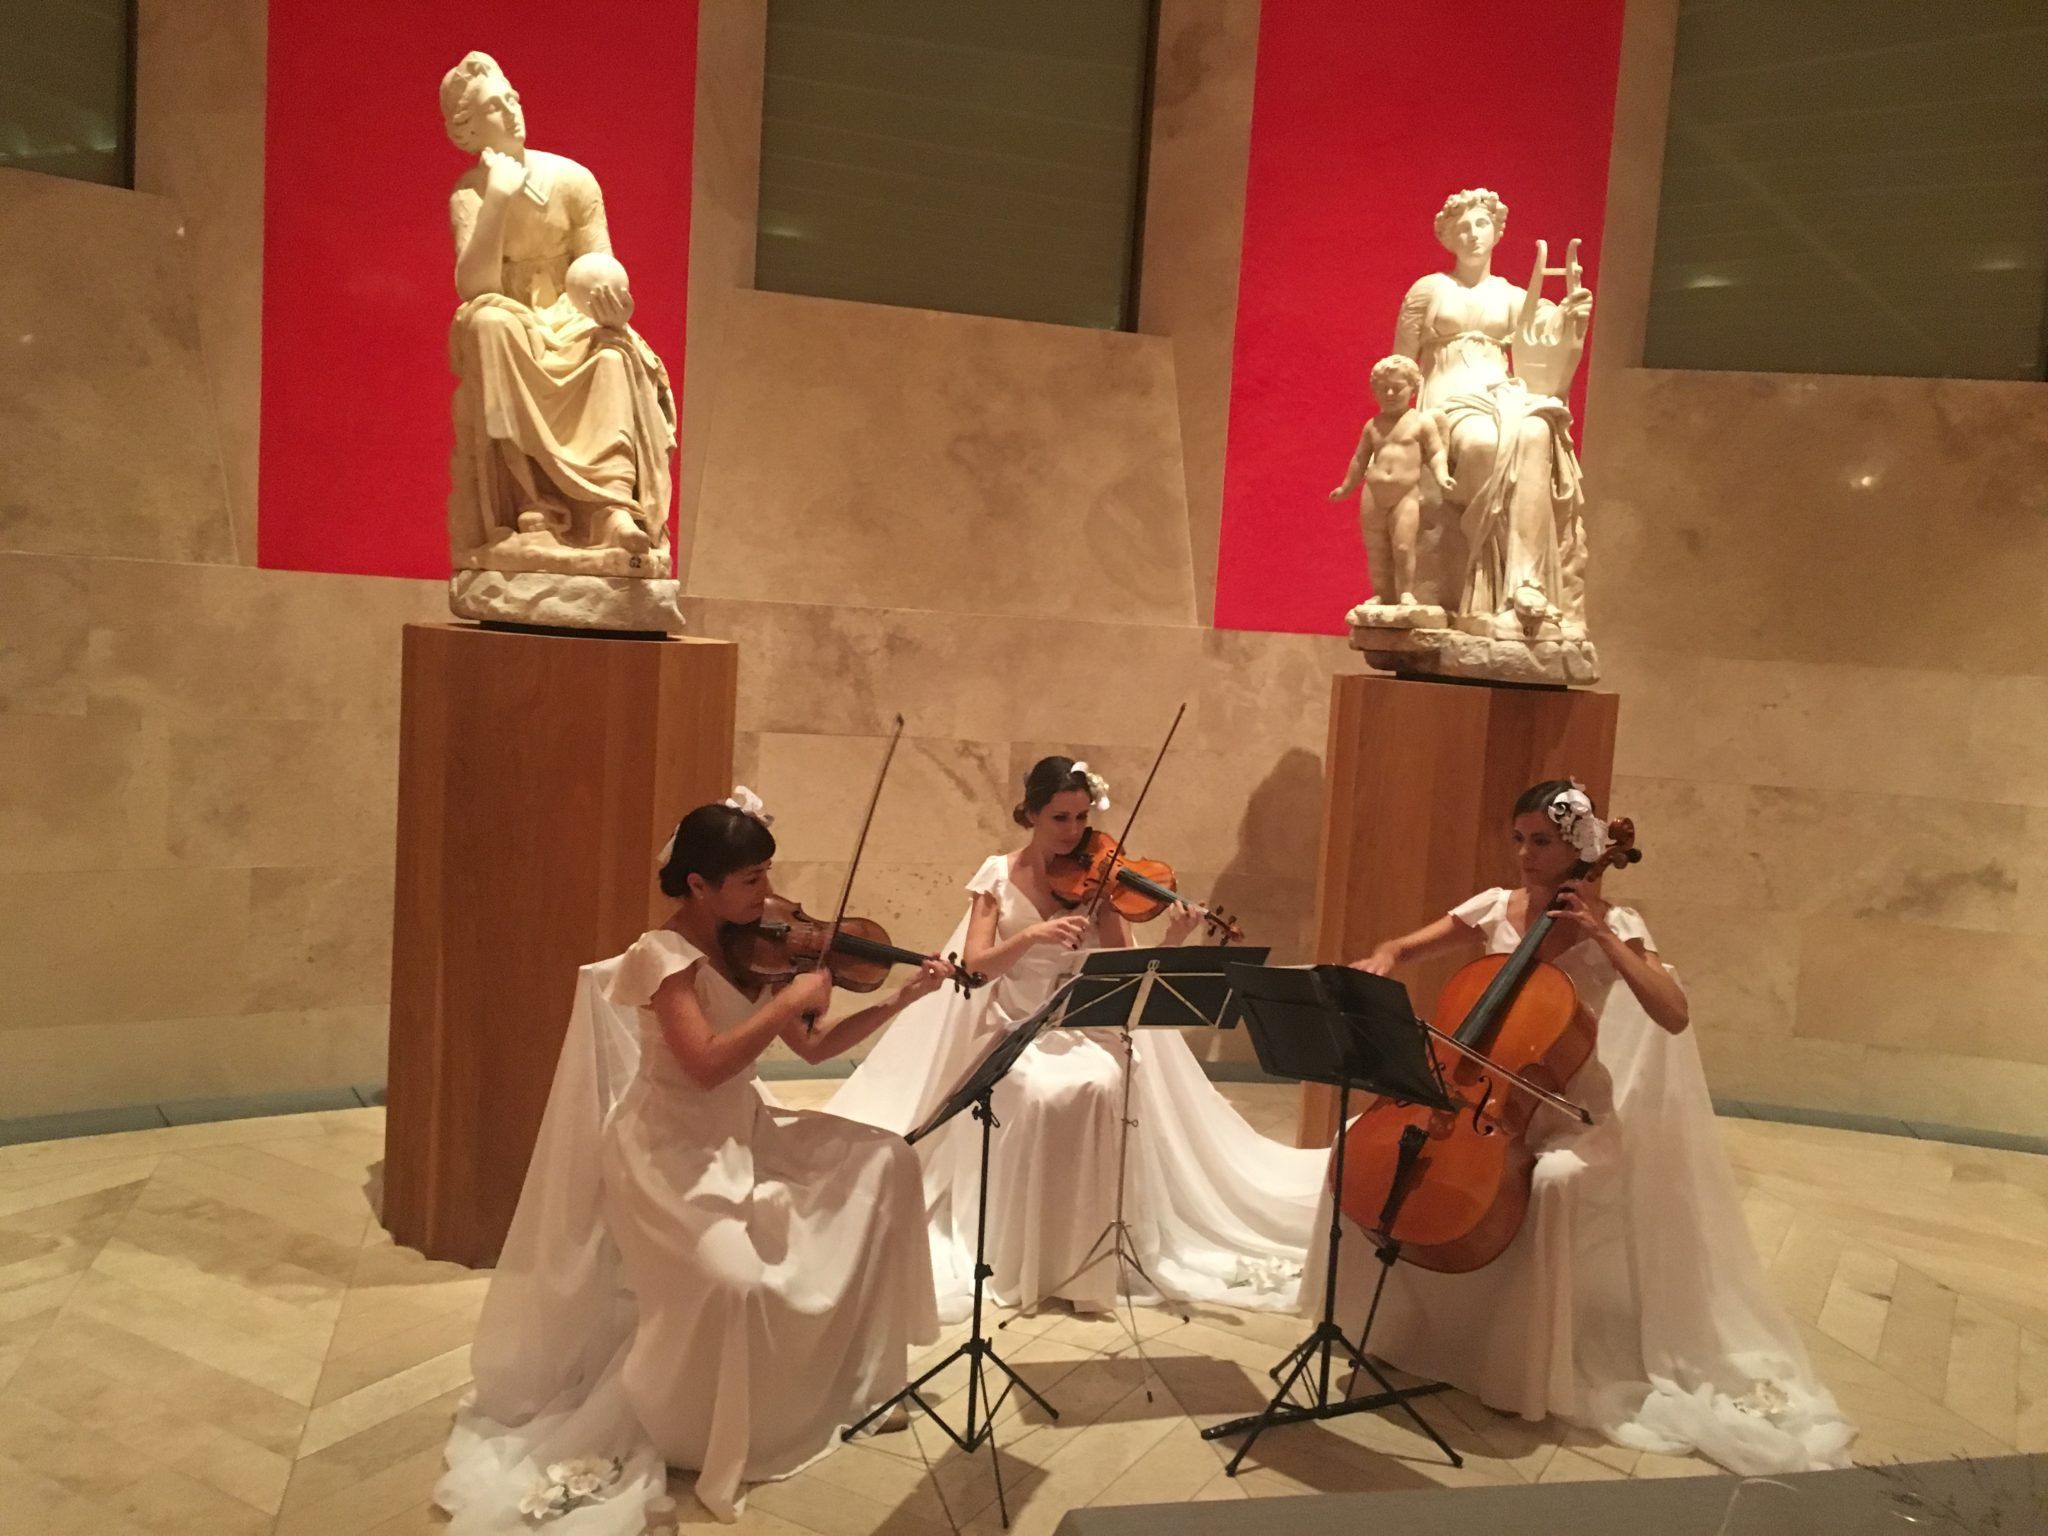 Dancem's string trio at the Prado Museum